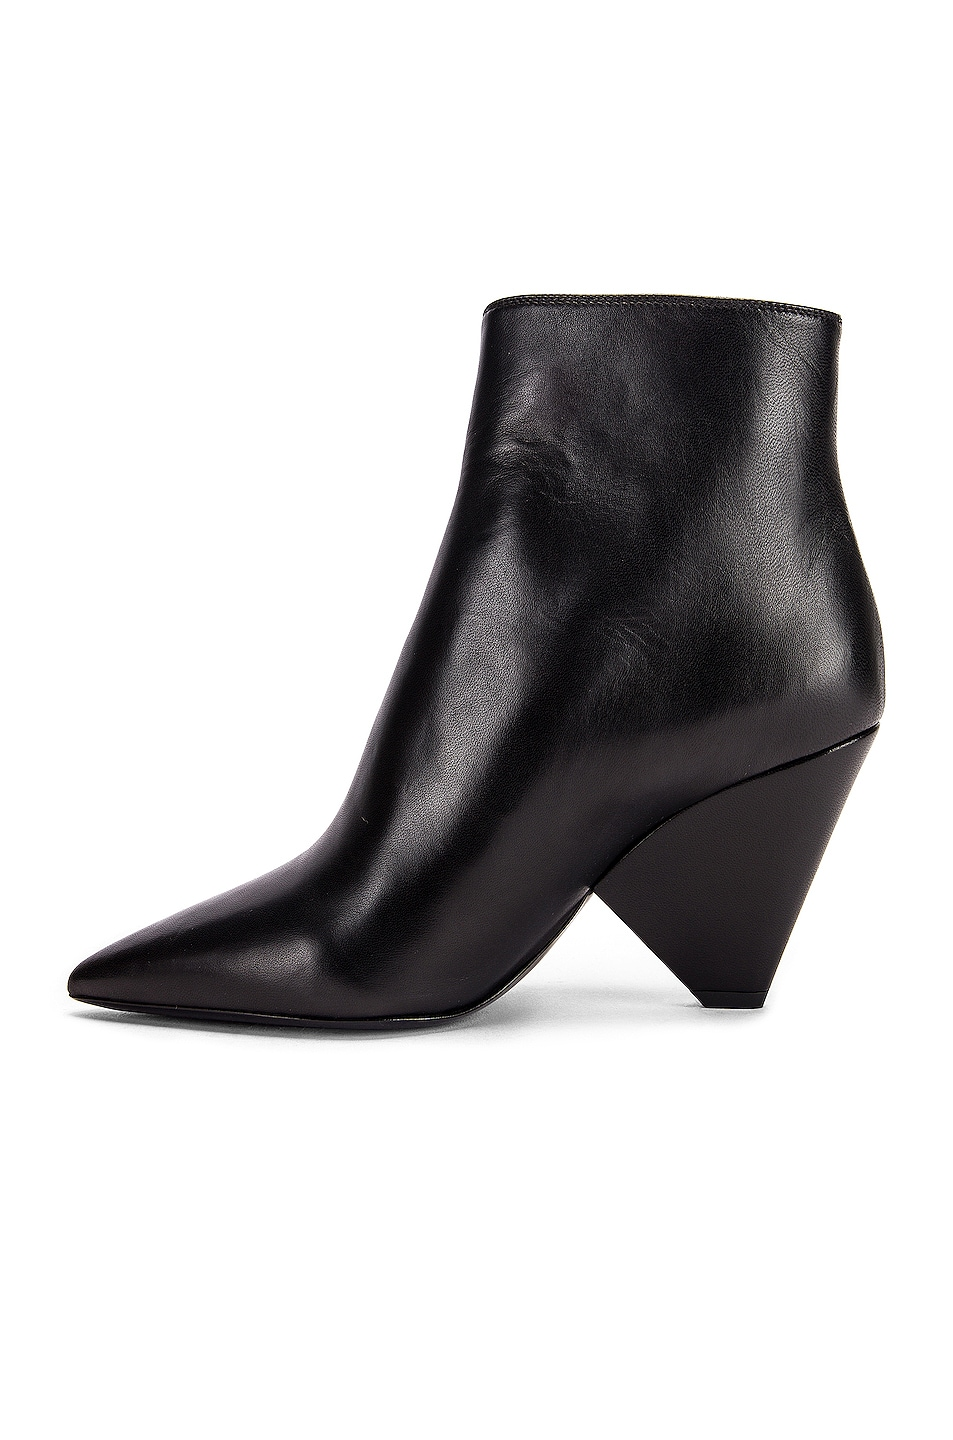 Image 5 of Saint Laurent Niki Zip Booties in Black